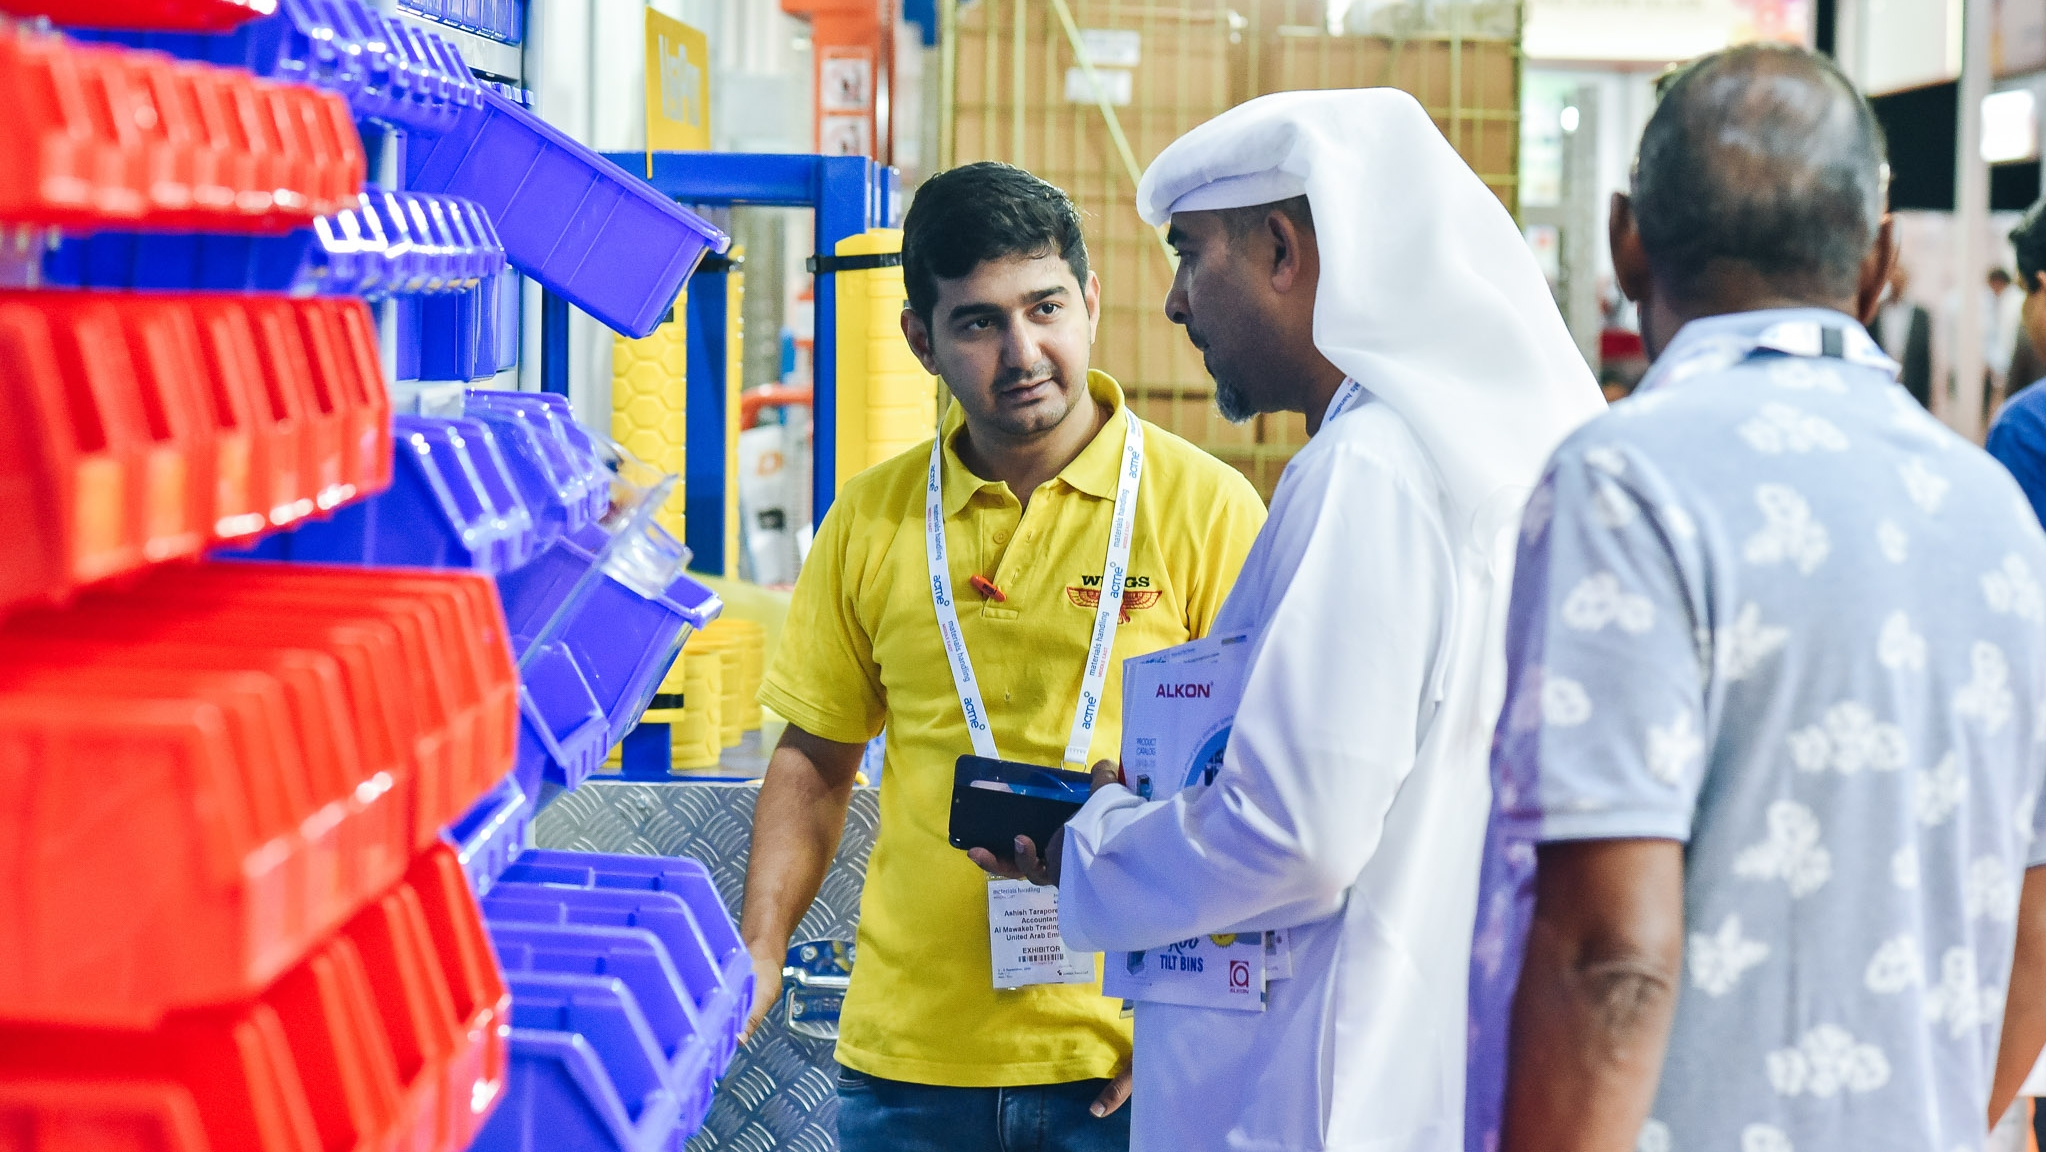 Materials Handling Middle East - Exhibitors list